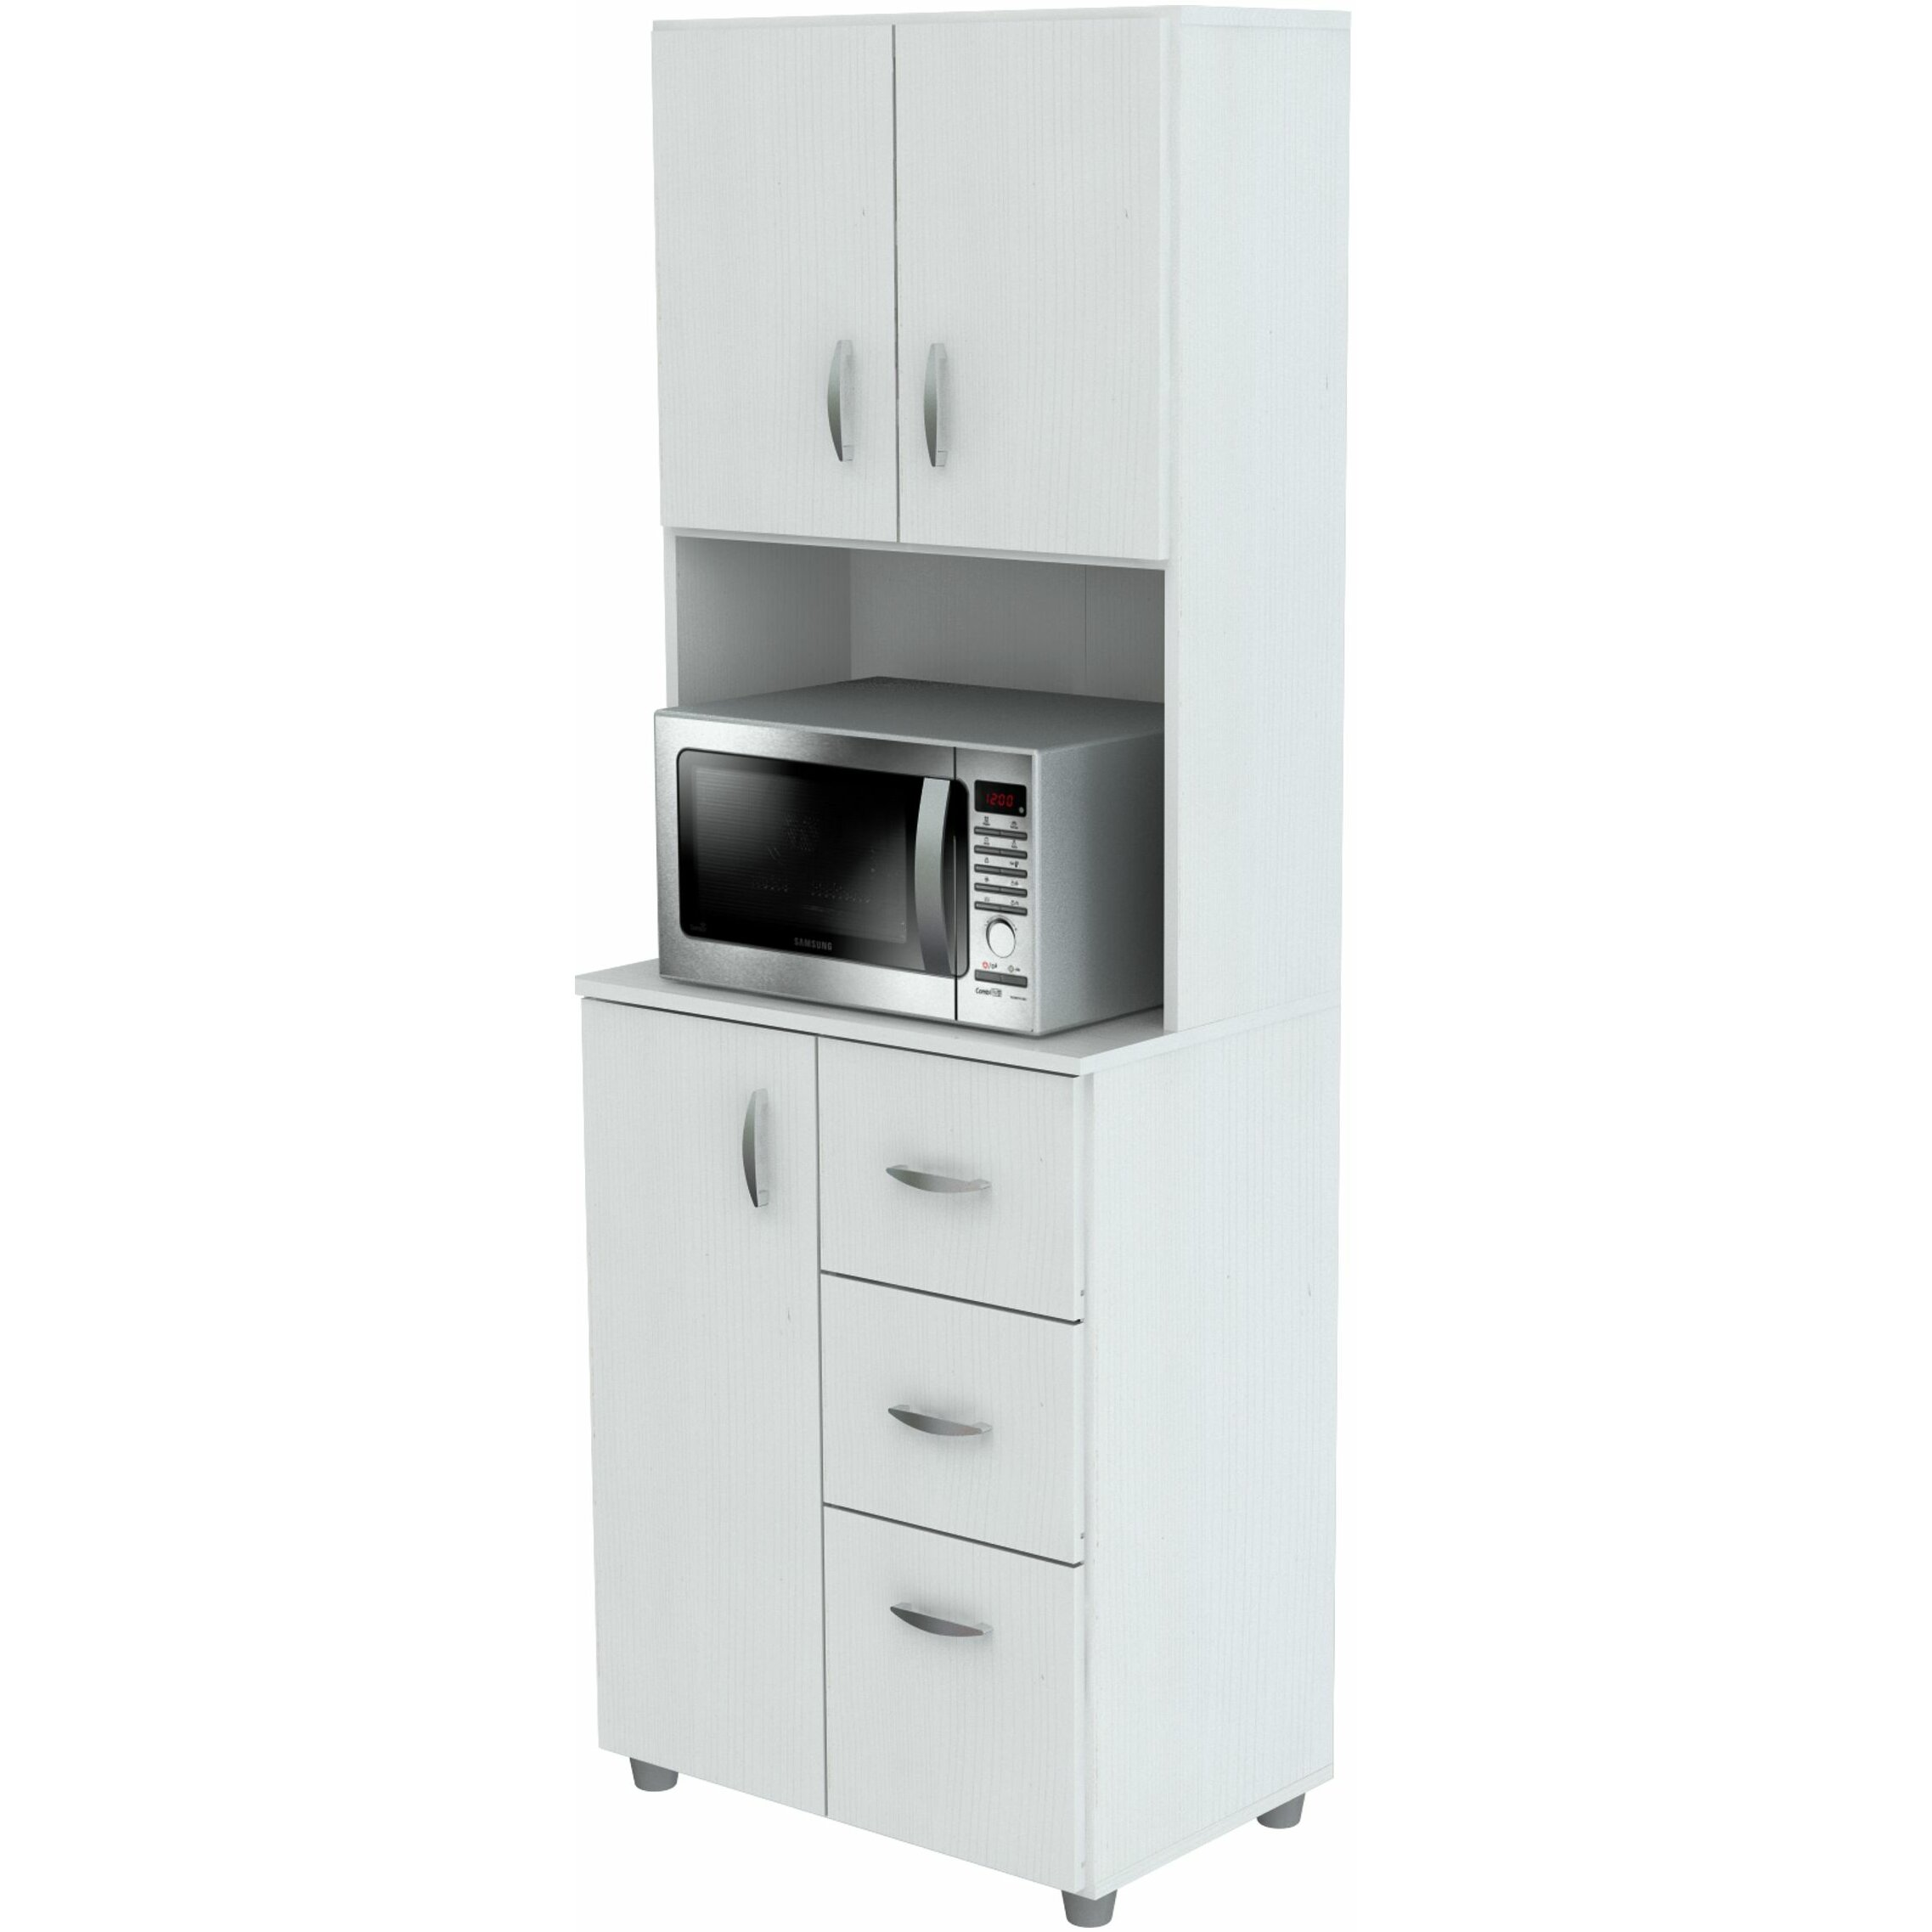 Inval inval kitchen cabinet reviews for Wayfair kitchen cabinets